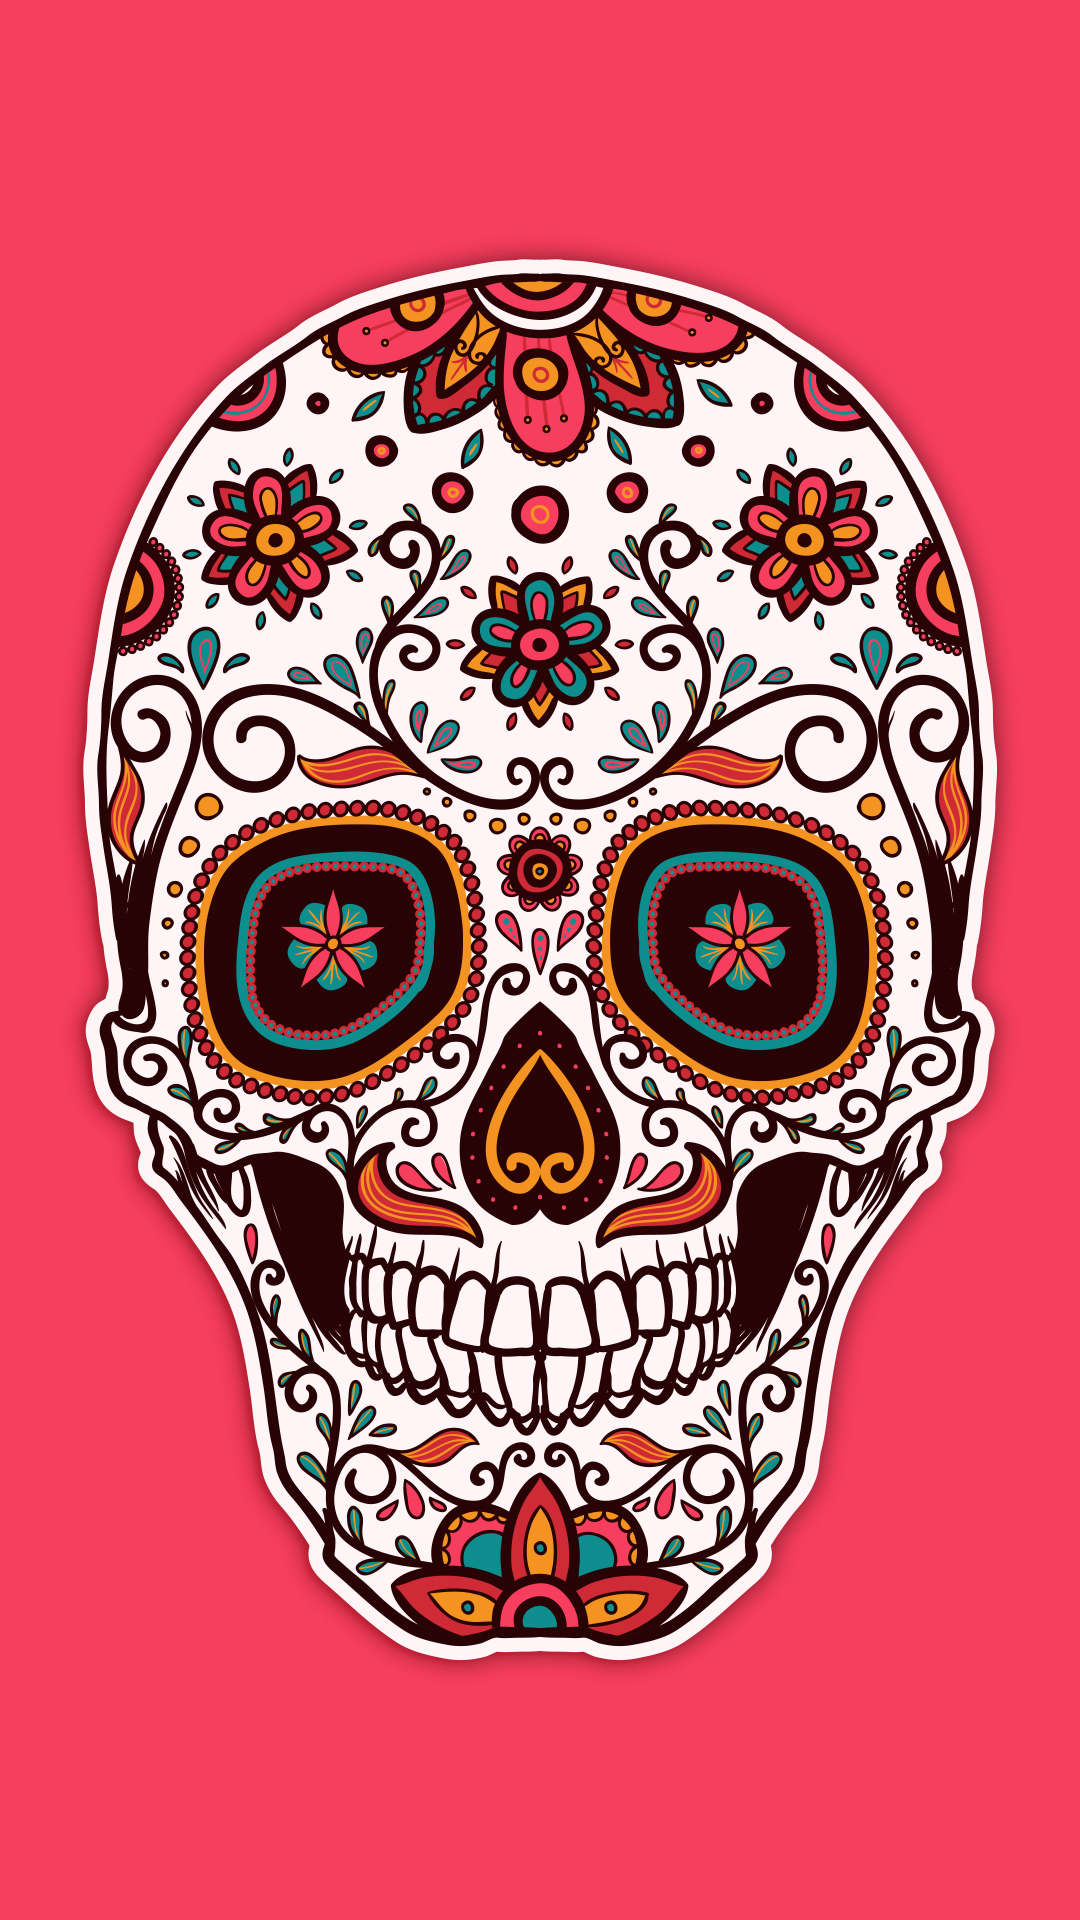 Free Hd Pink Sugar Skull Phone Wallpaper 6644